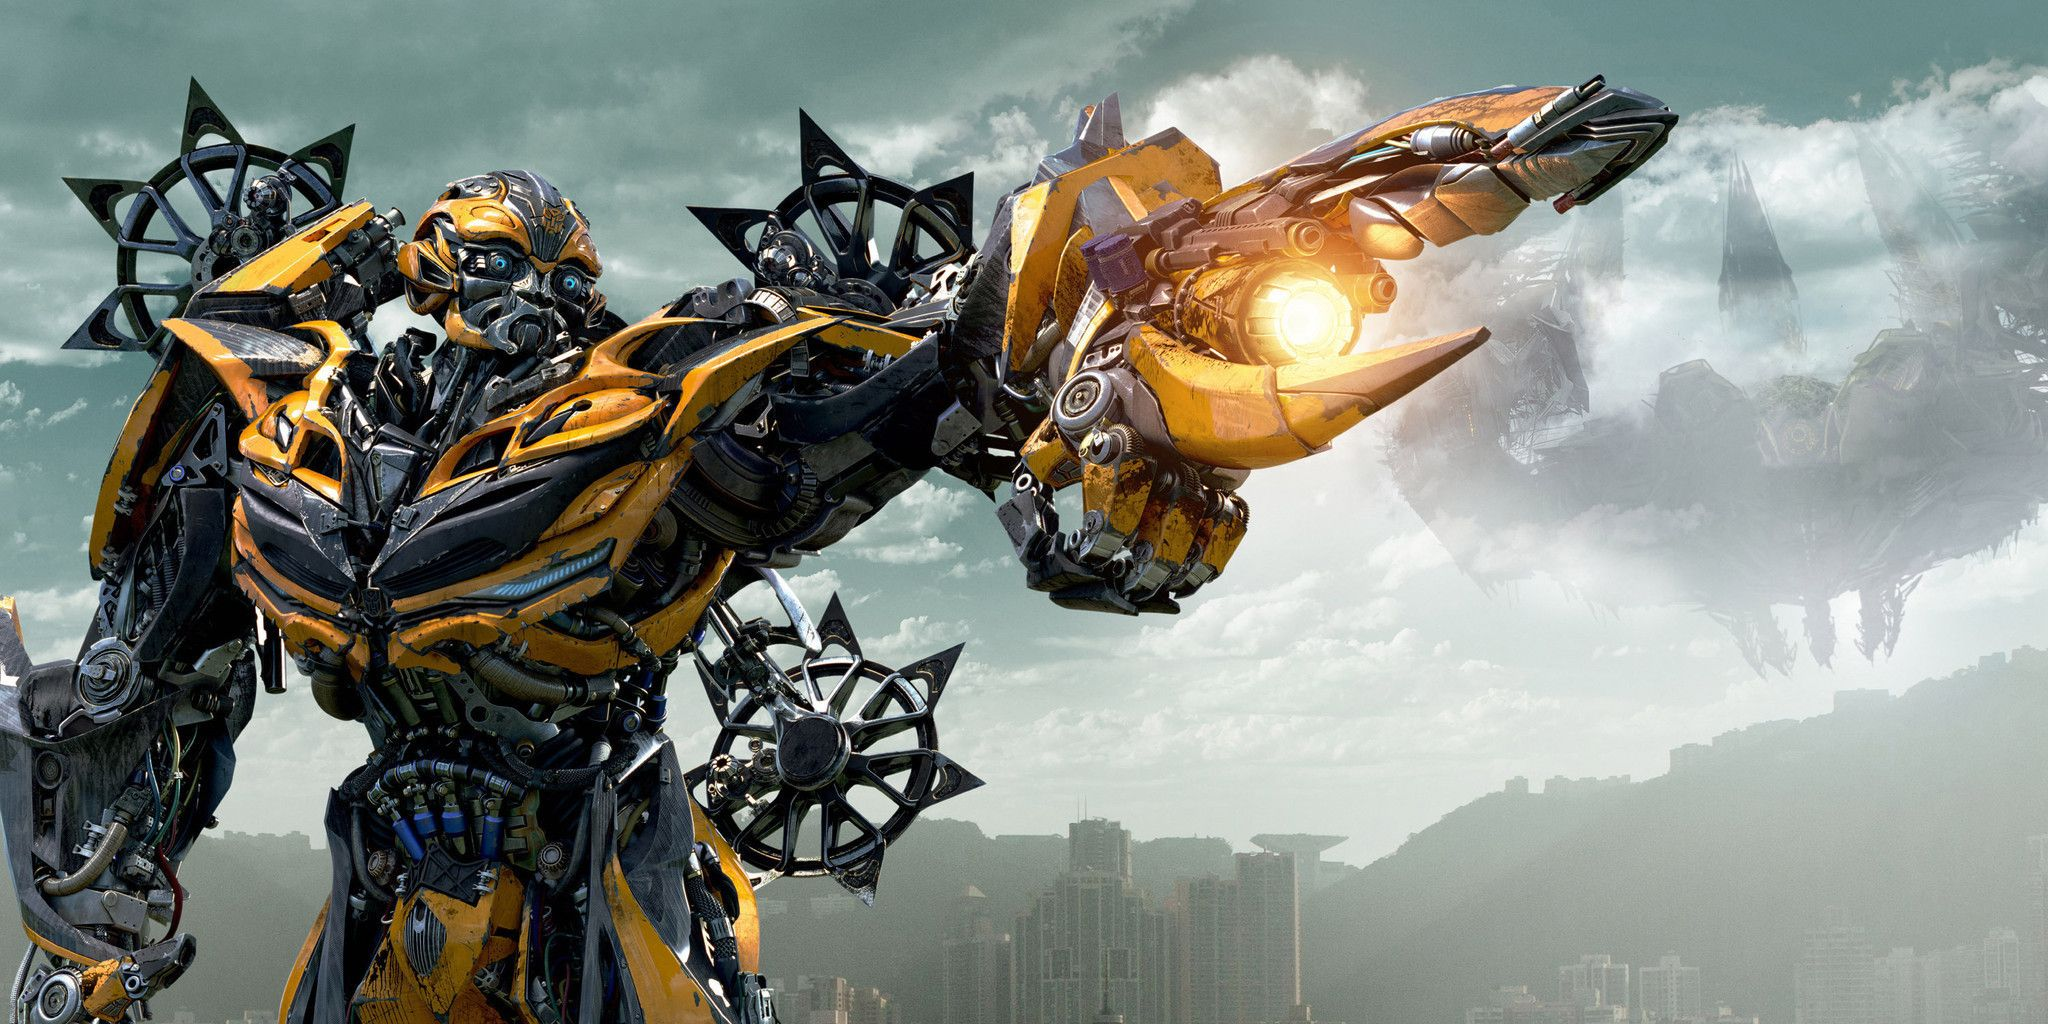 Transformers 5 : The Last Knight Torrent Movie Link Free